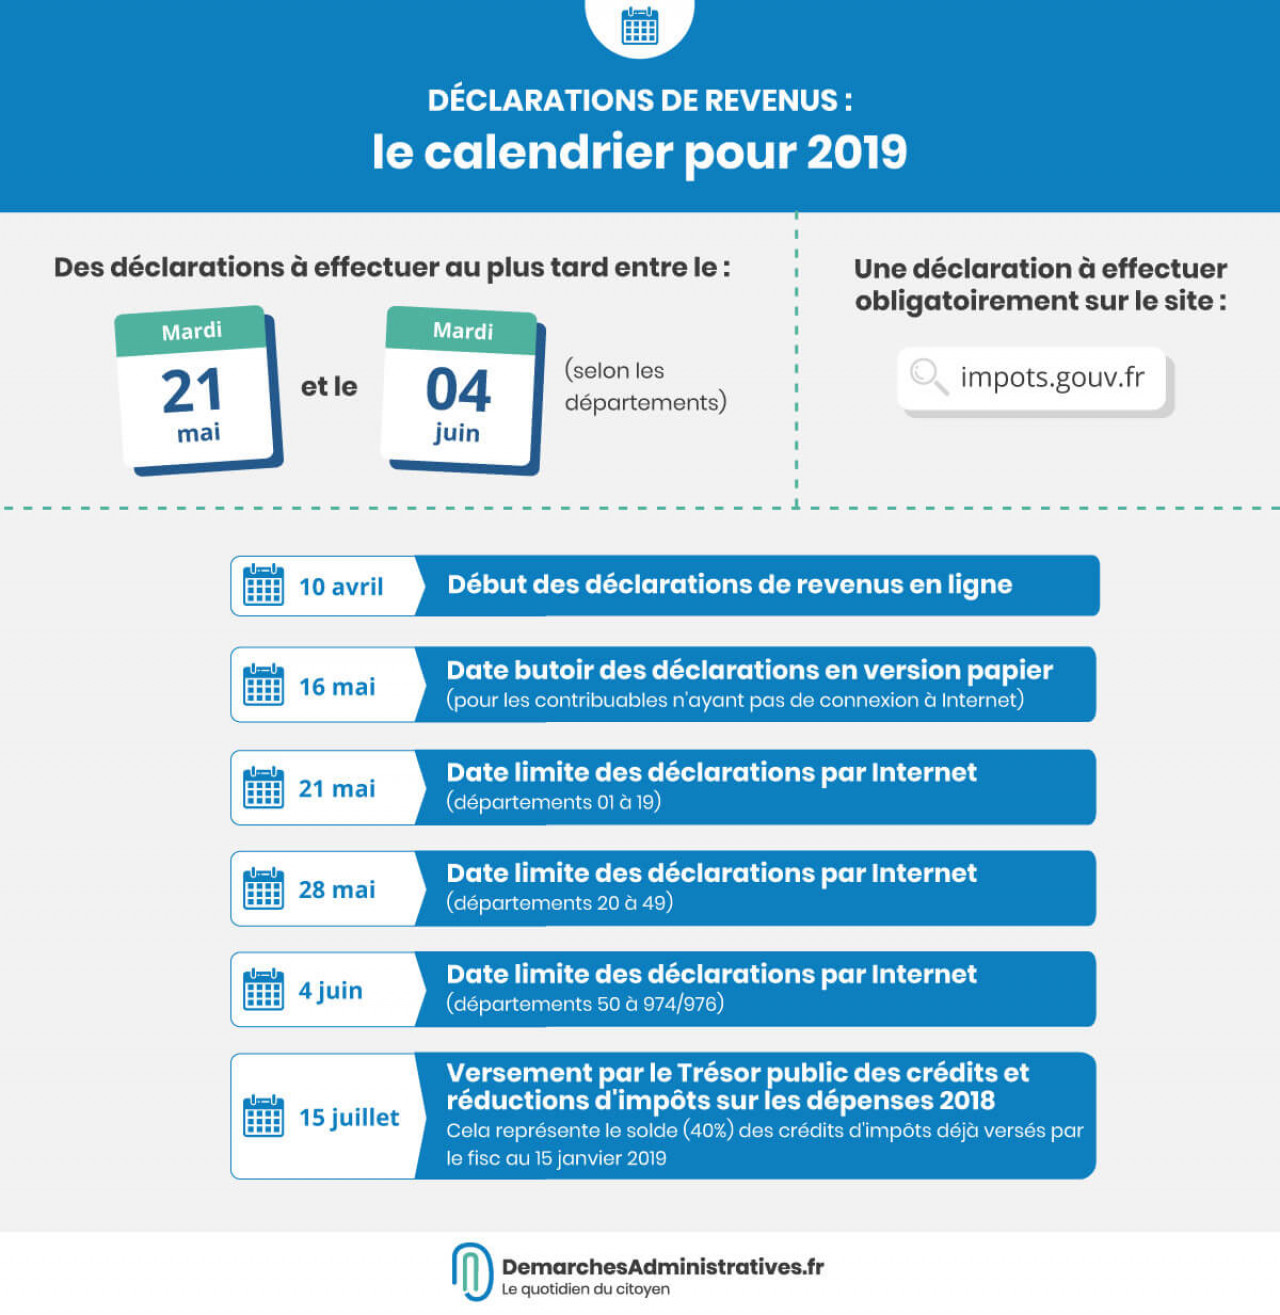 Dates Des Declarations De Revenus Par Departements Et Reception Des